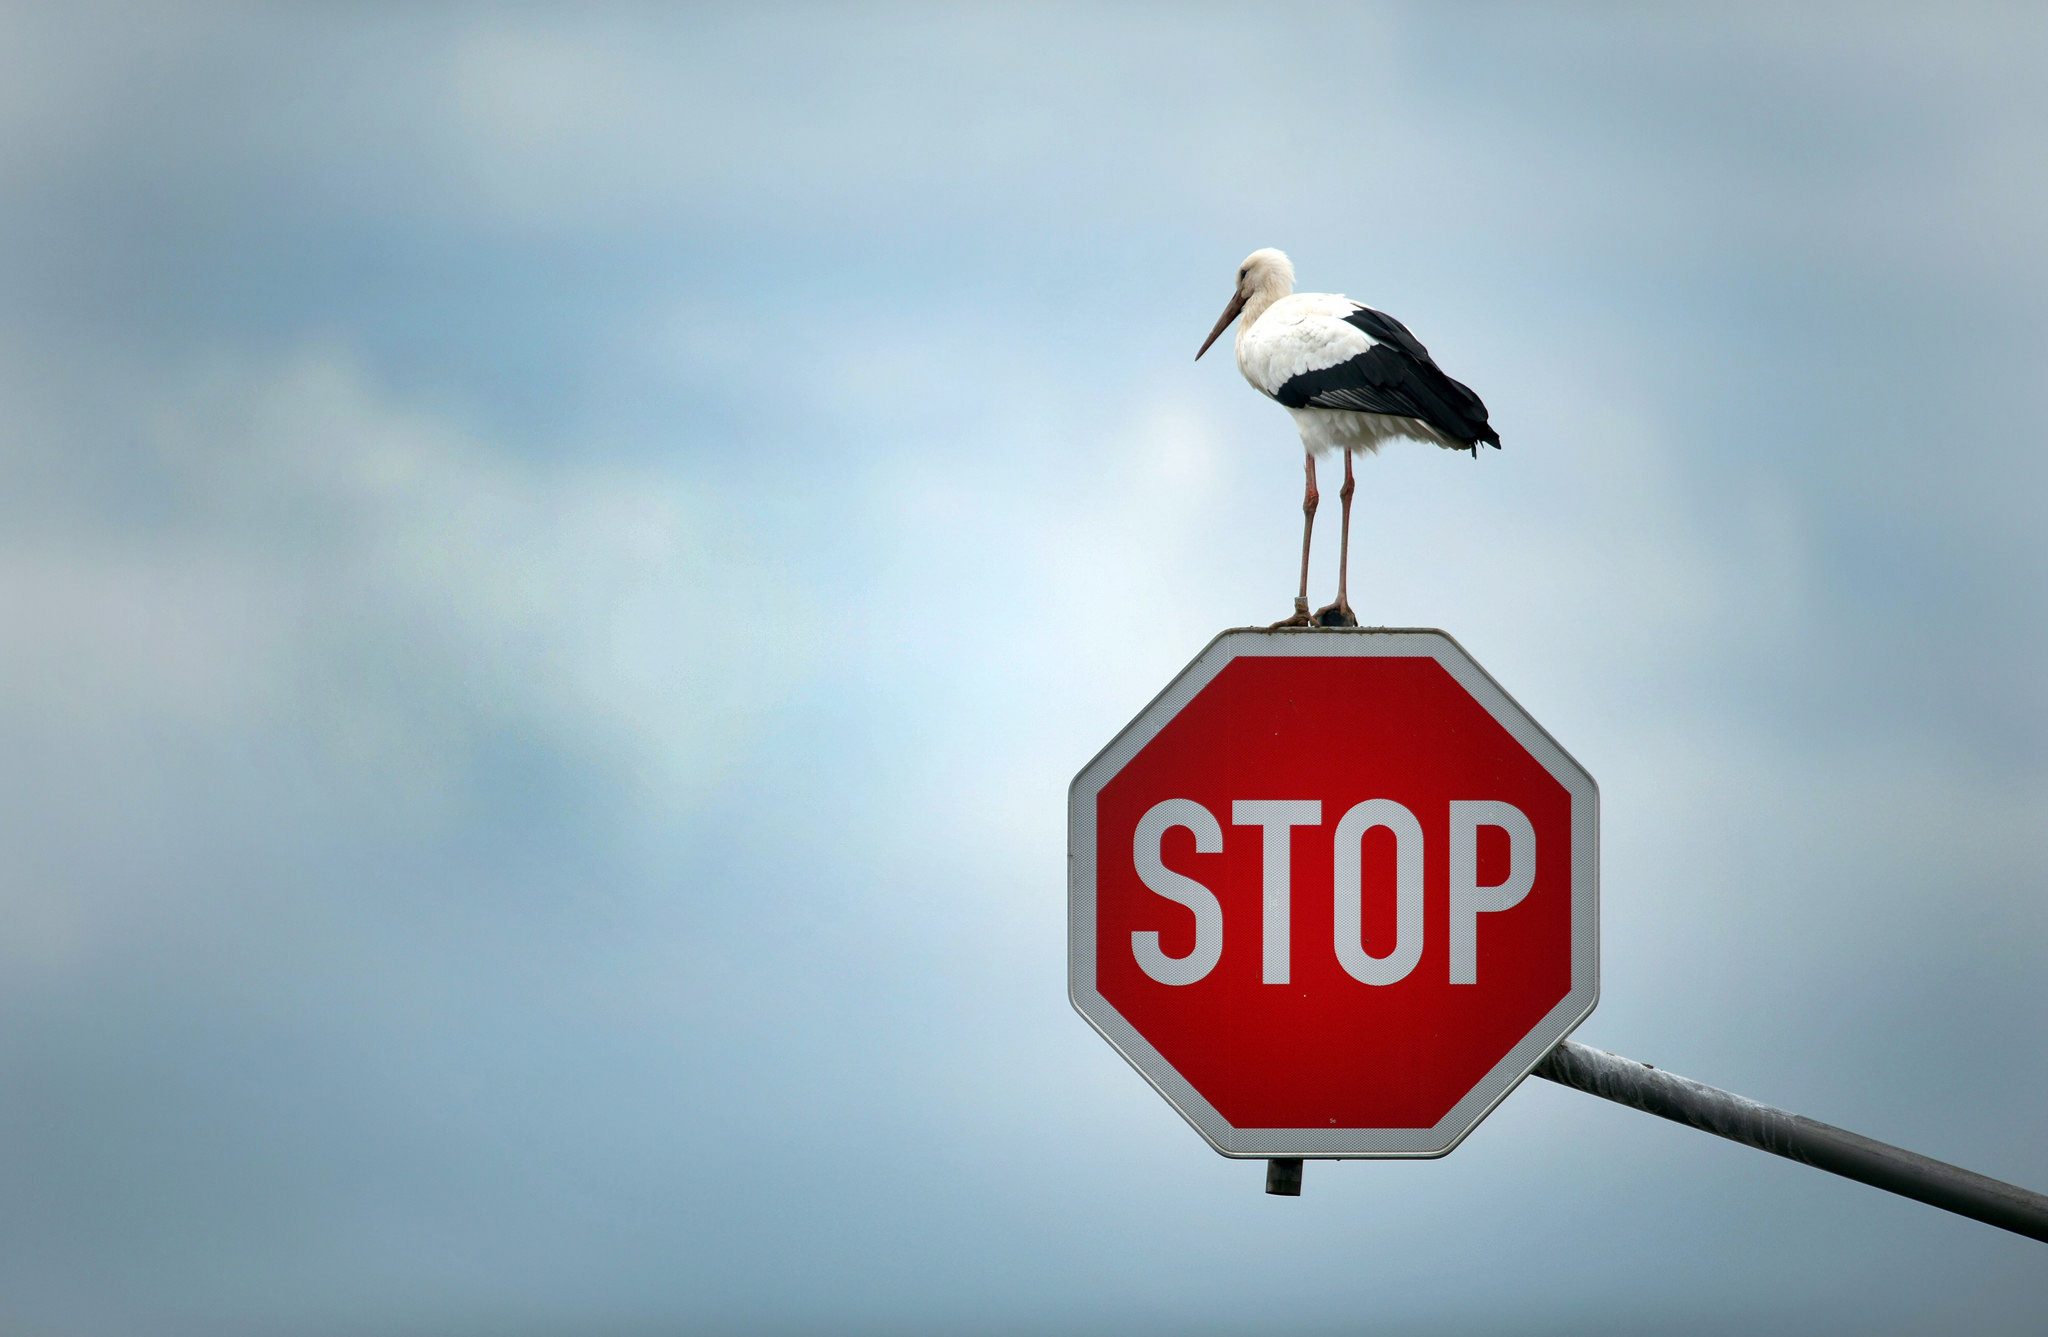 epa03910744 A stork perches on a stop sign near Immerath, Germany, 15 October 2013, before continuing his journey to search for his favourite food targets - mice, frogs and other small animals.  EPA/FEDERICO GAMBARINI